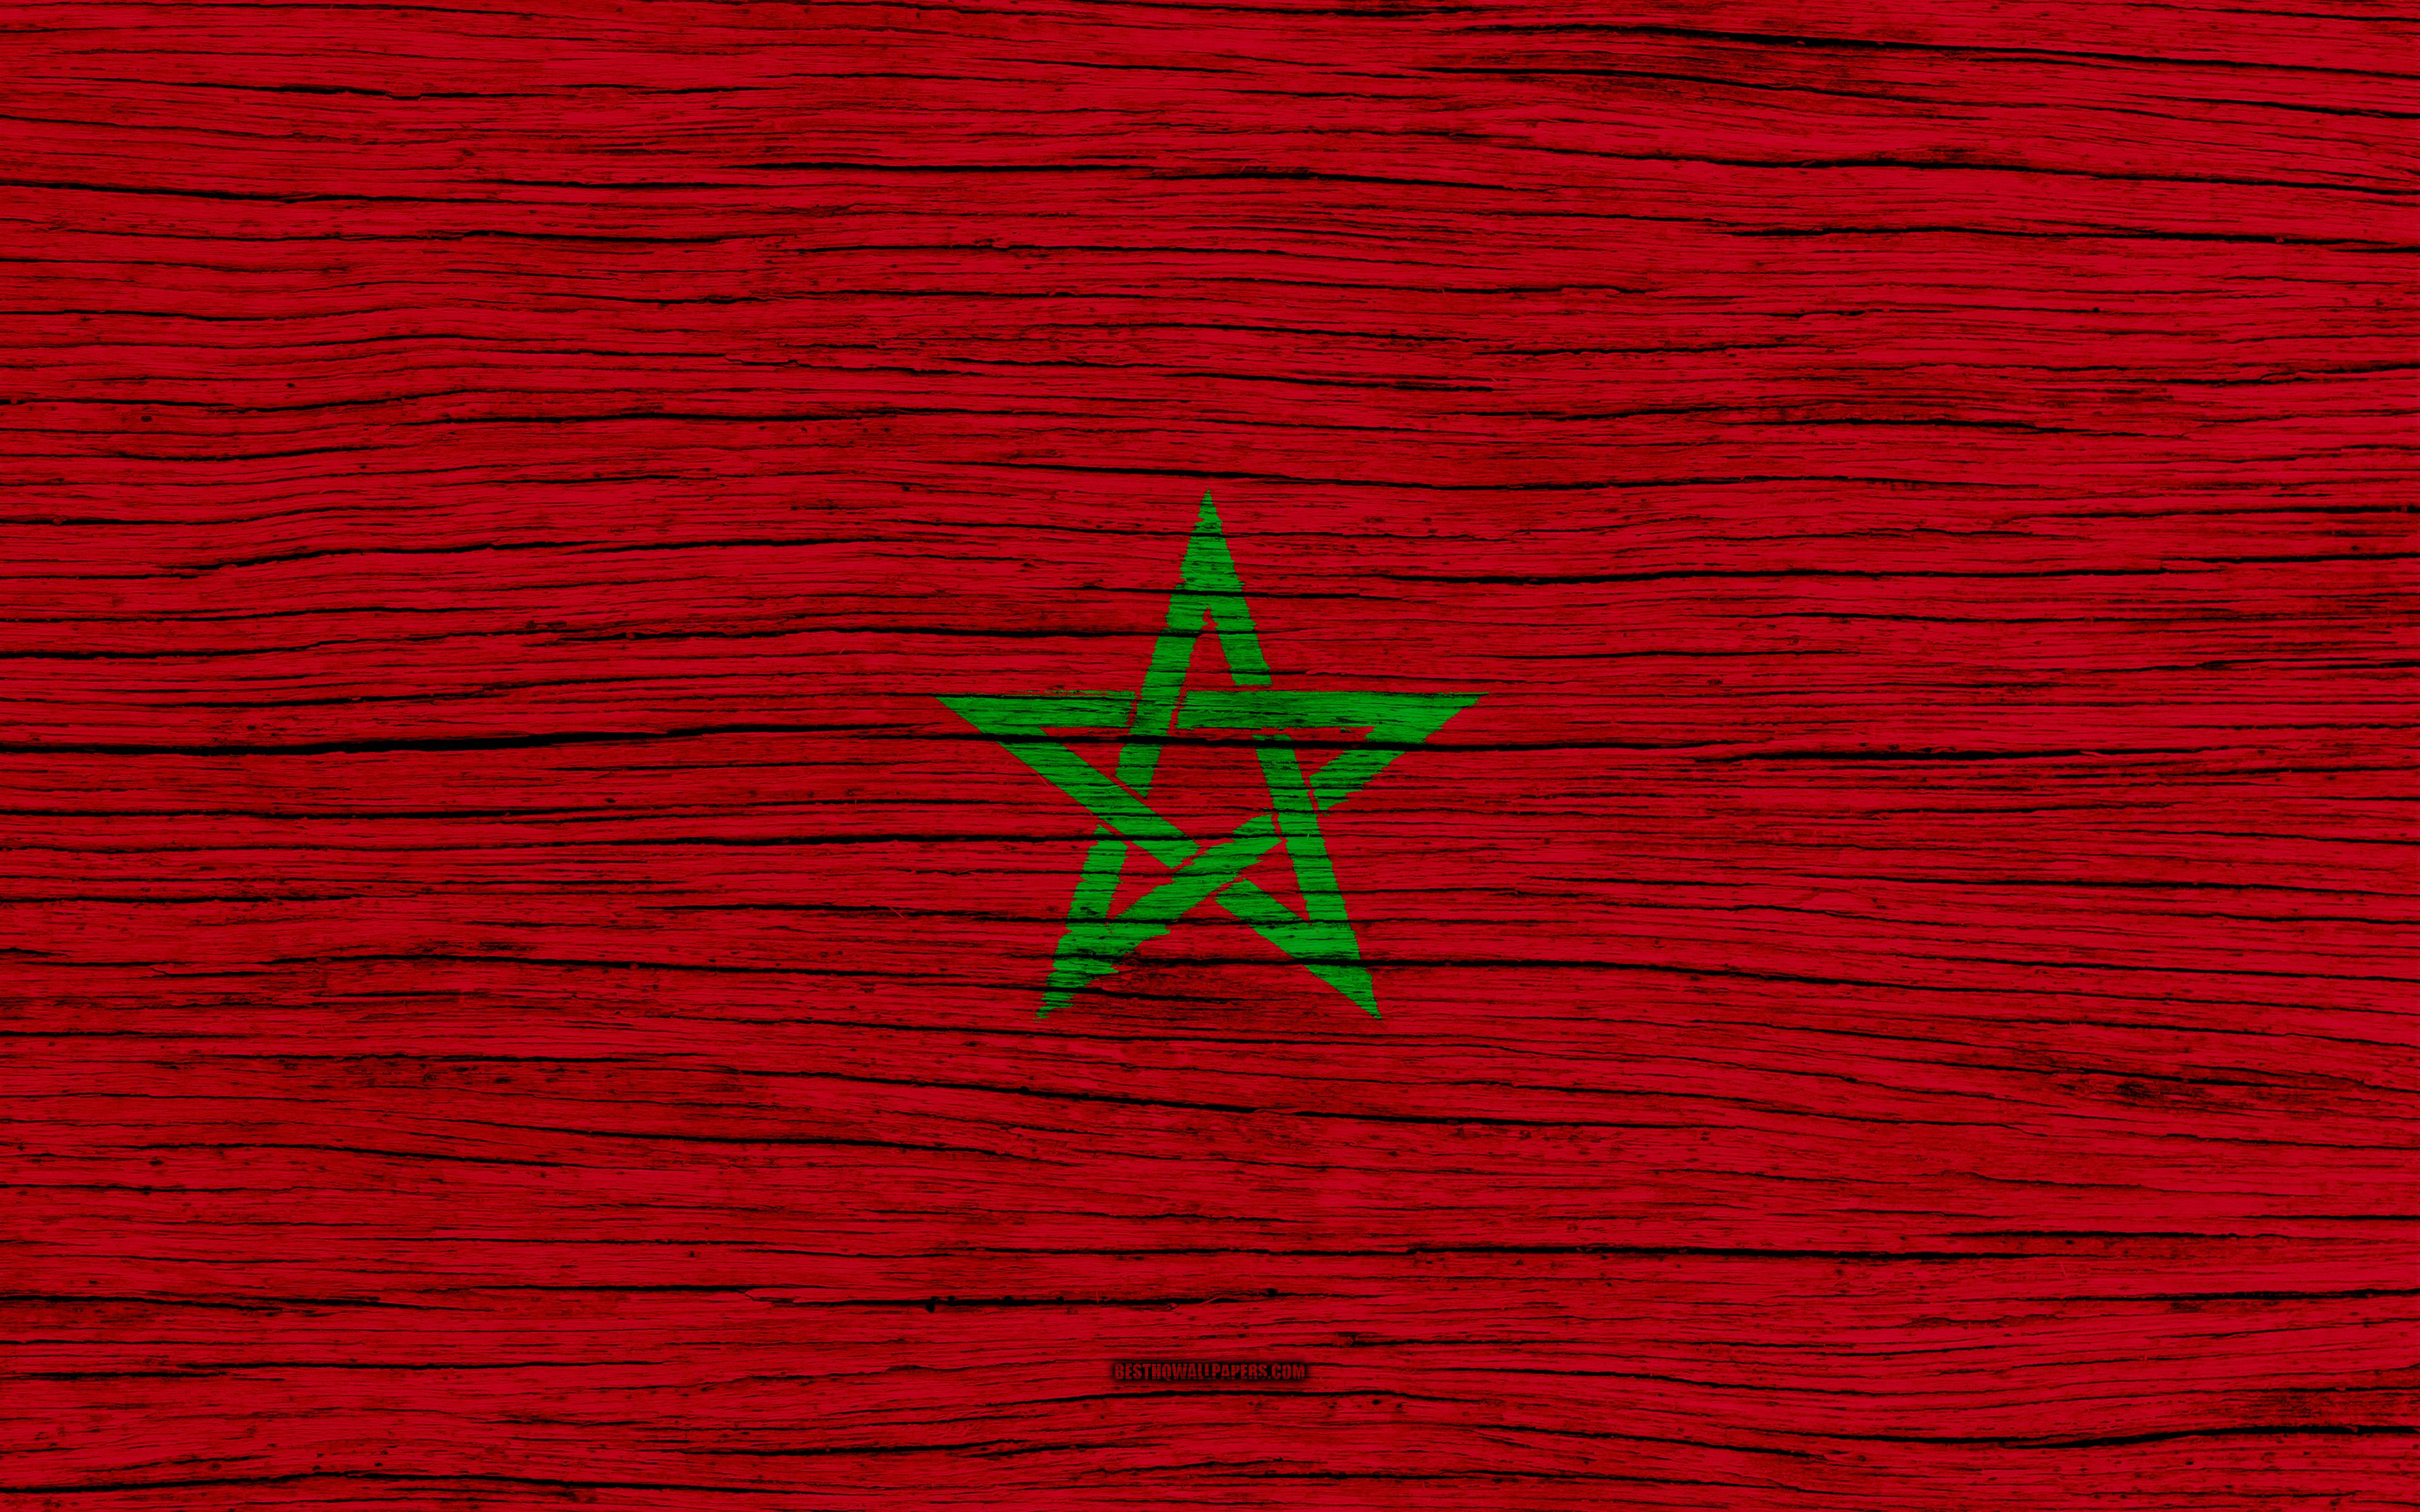 Download wallpapers Flag of Morocco, 4k, Africa, wooden texture